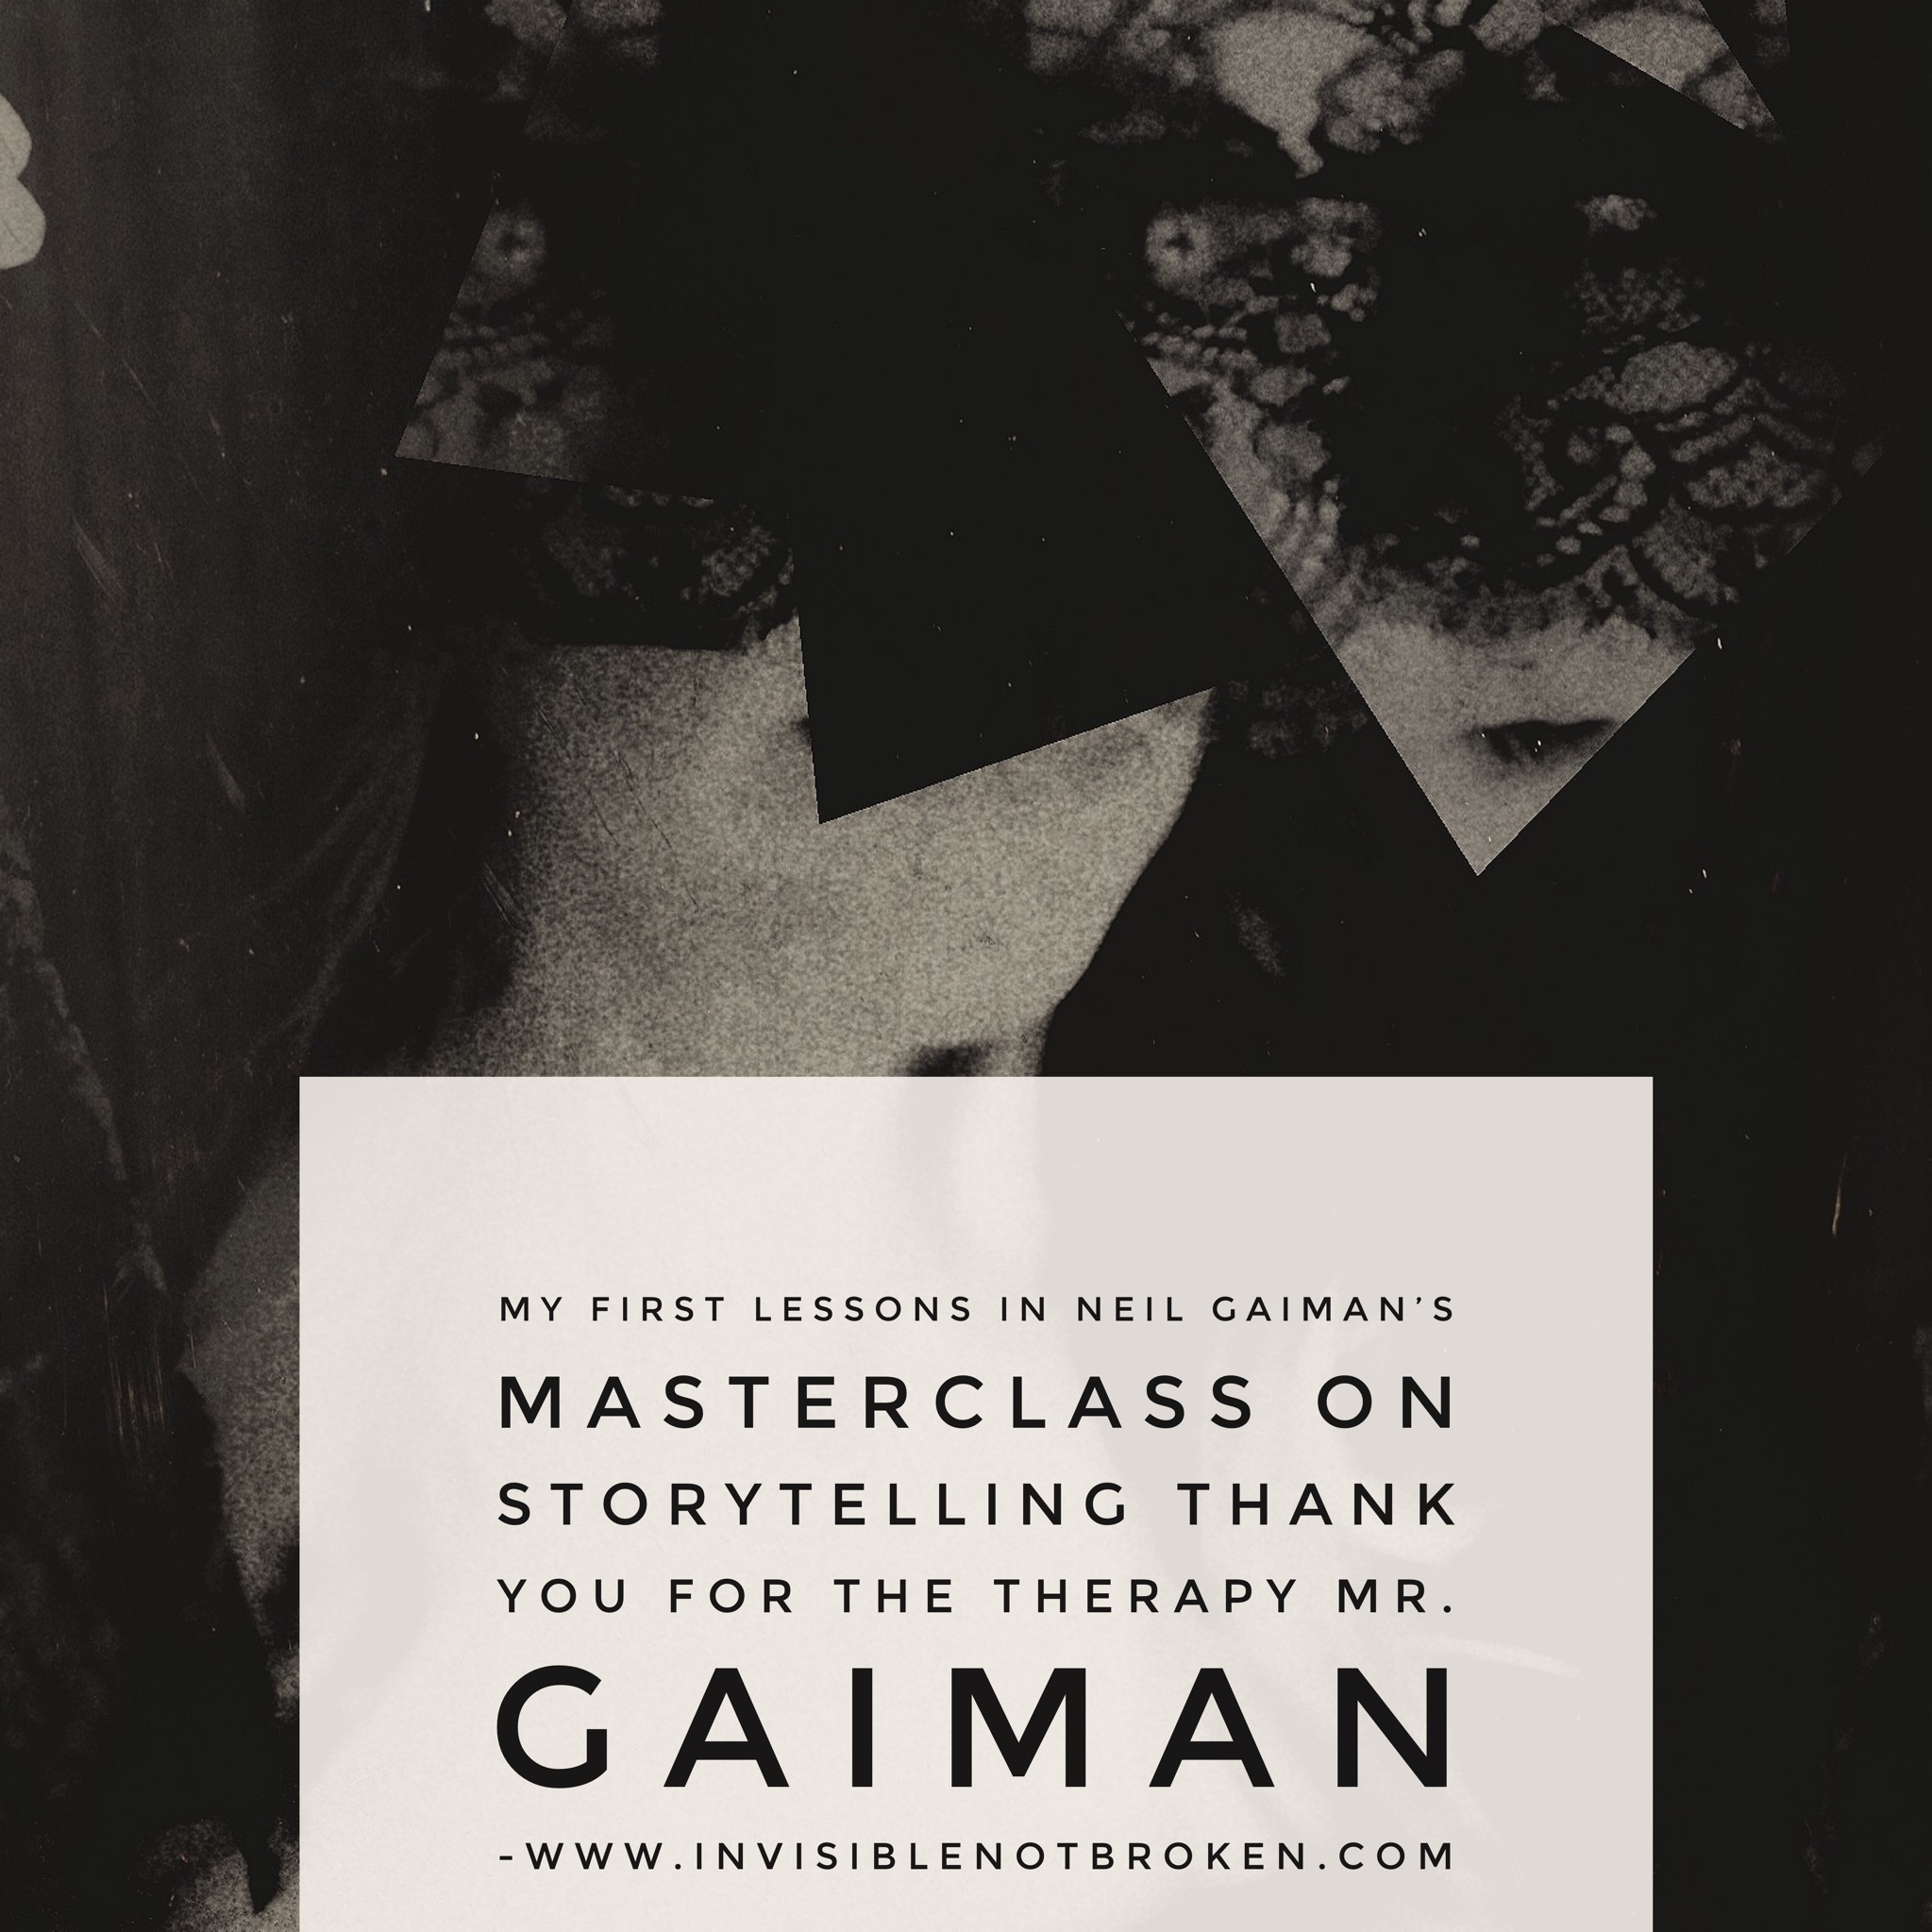 my-first-lessons-in-neil-gaimans-masterclass-on-storytelling-thank-you-for-the-therapy-mr-gaiman-instagram.jpg